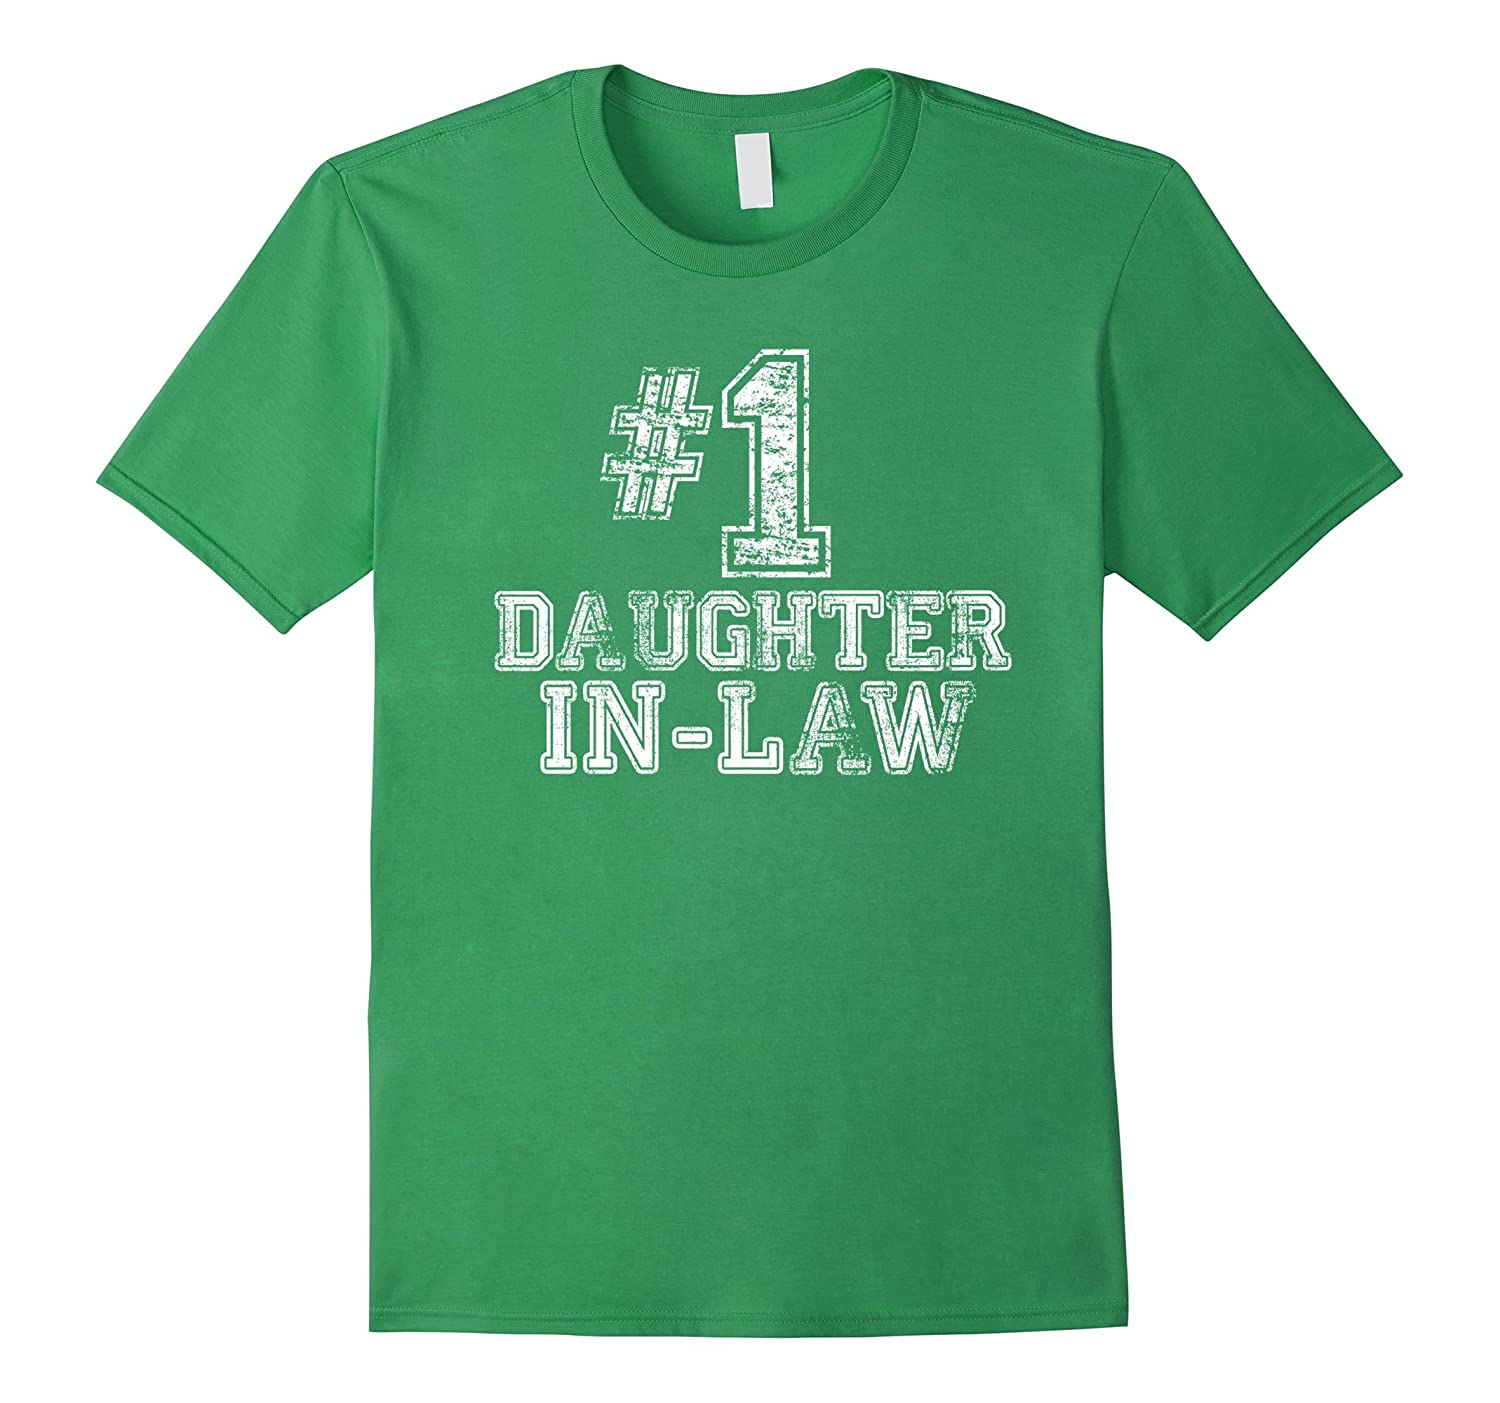 #1 Daughter-in-Law T Shirt -Number One Mother's Day Gift Tee